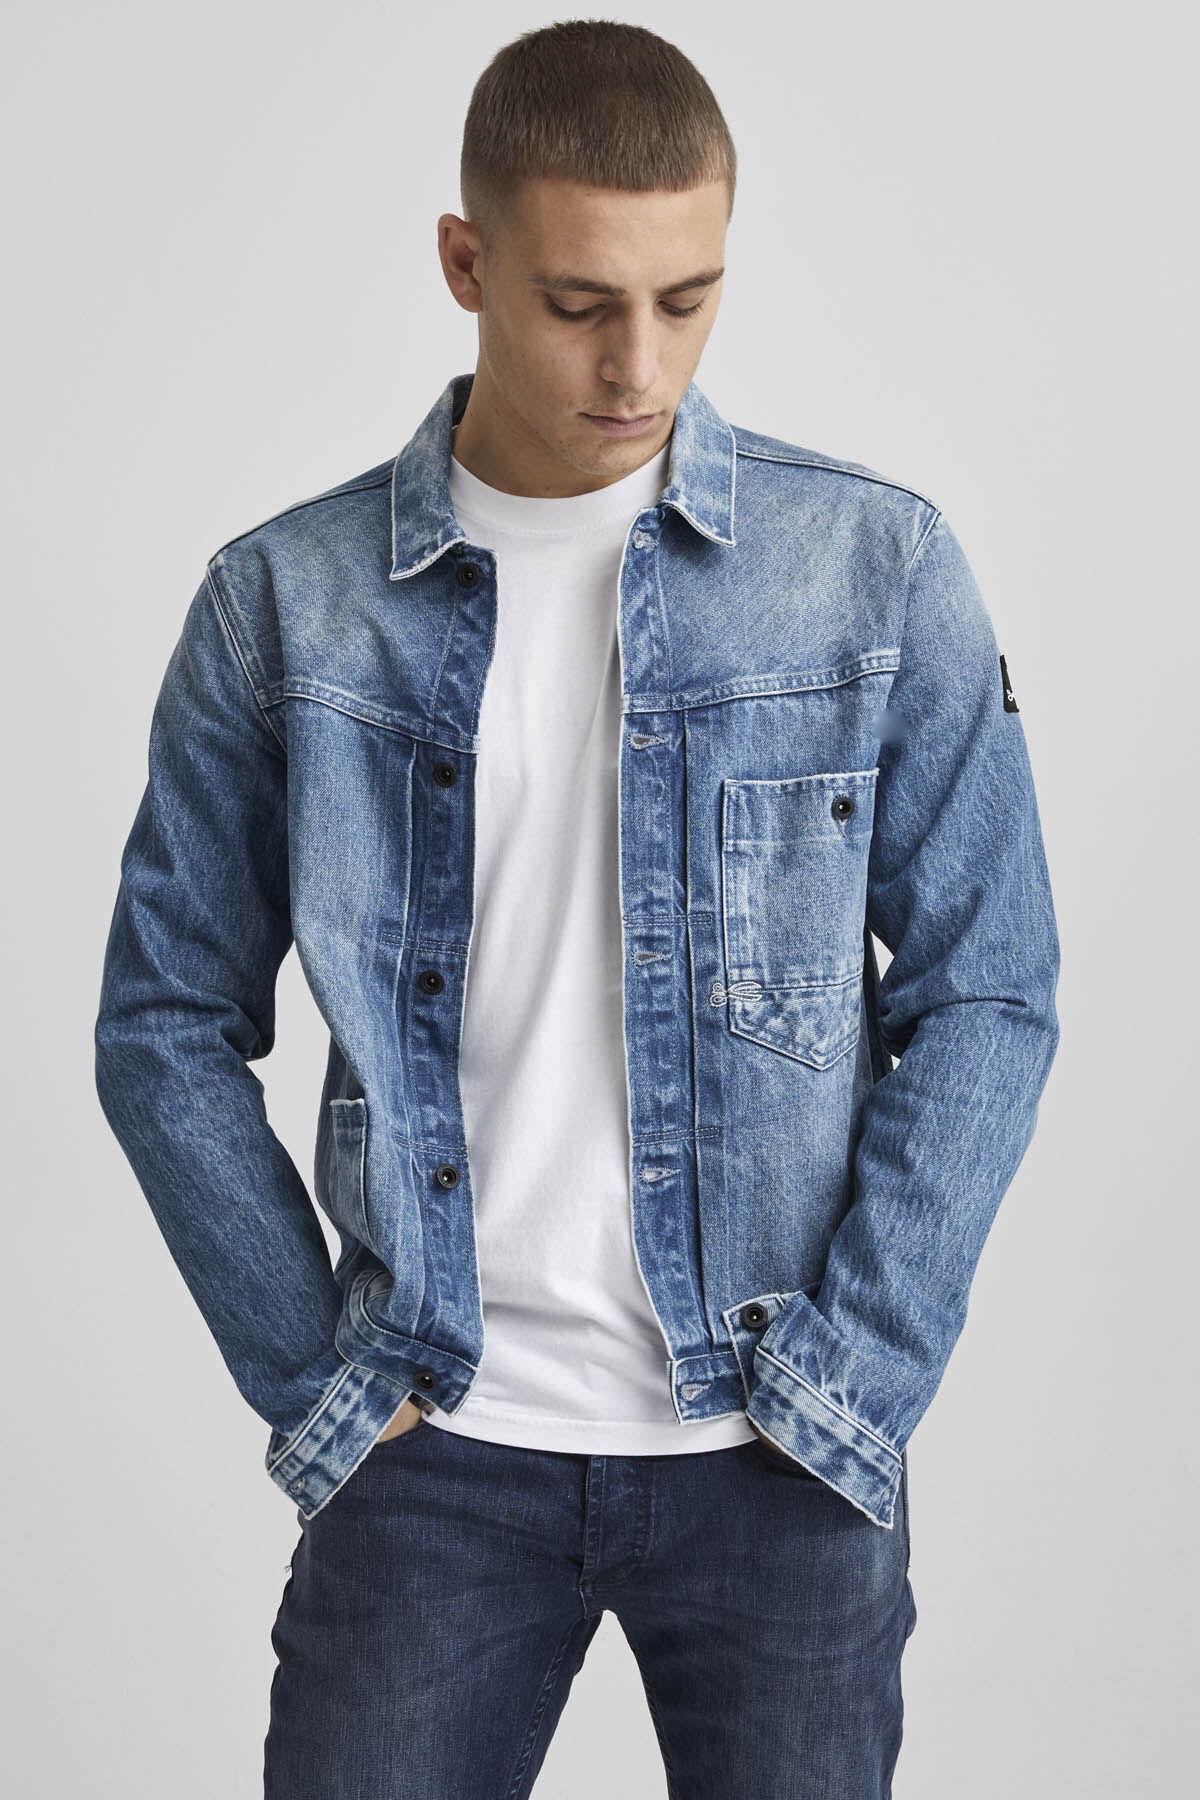 HOMAGE JACKET Abrasions - Boxy Fit